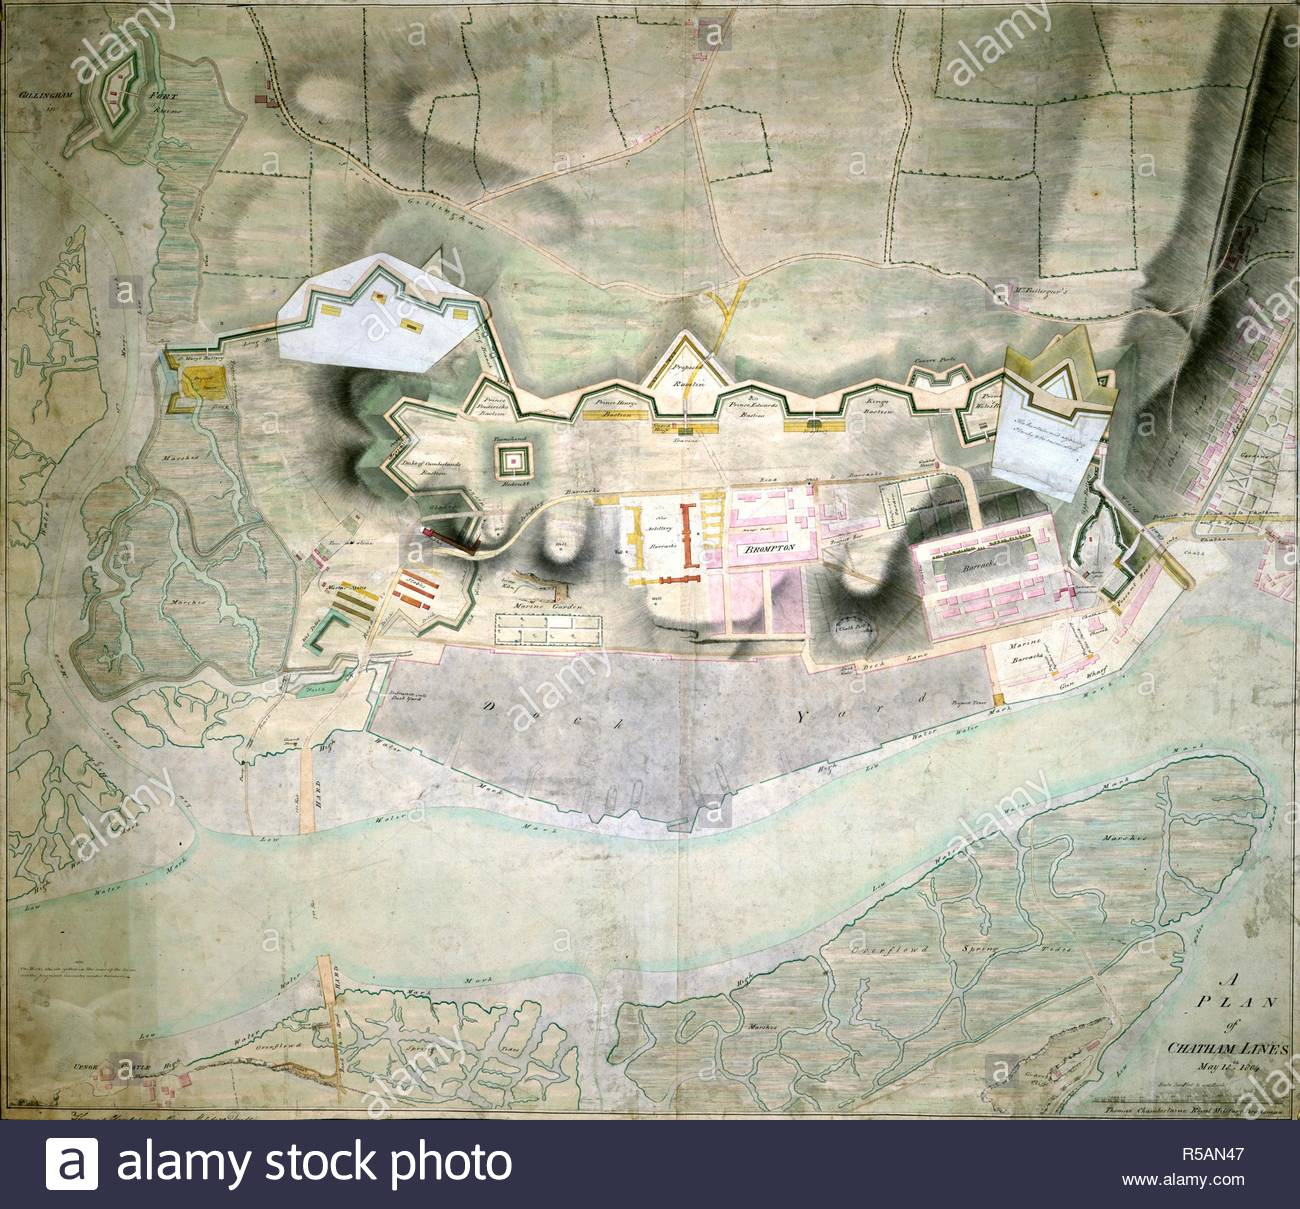 Chatham England Map.Plan Of Chatham Lines England 1804 Wholw Plan Plan Of Chatham